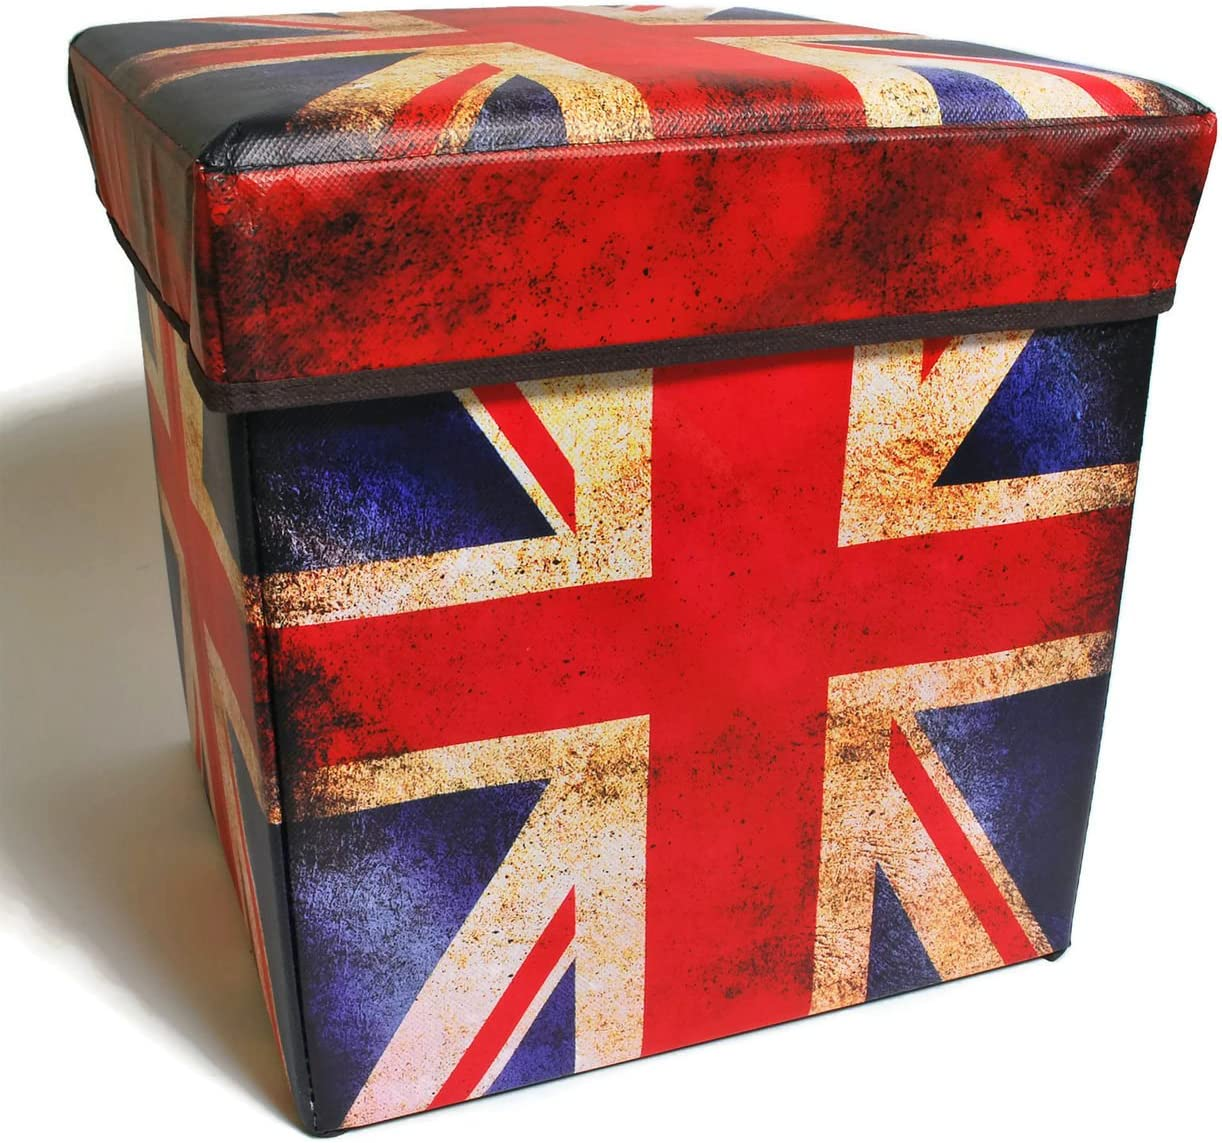 Inymall Home Interior Storage Ottoman British Flag Design